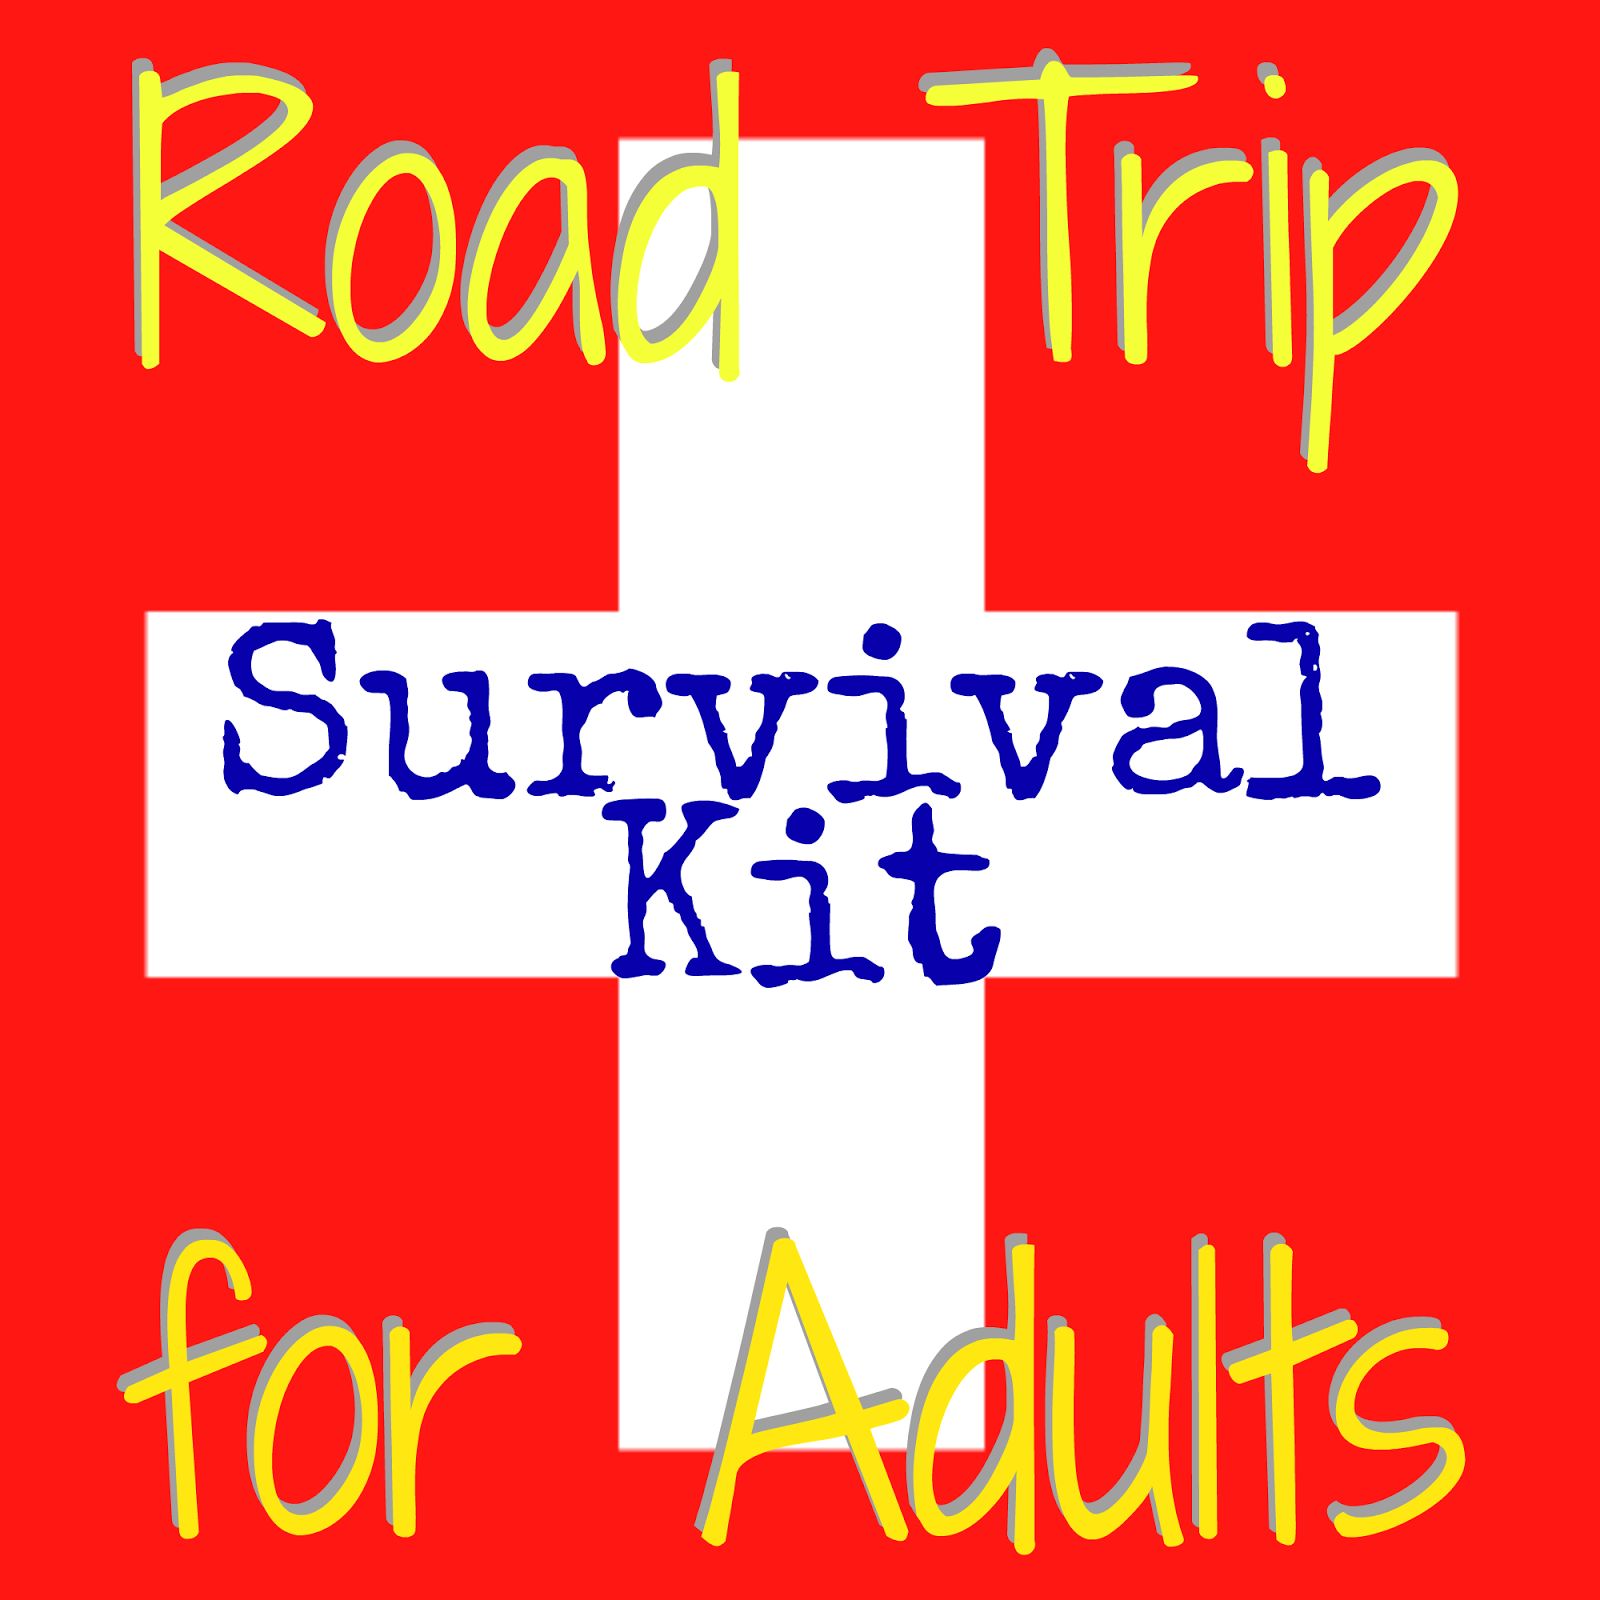 http://lovingasoldier.com/pcs-road-trip-survival-kit-for-adults/